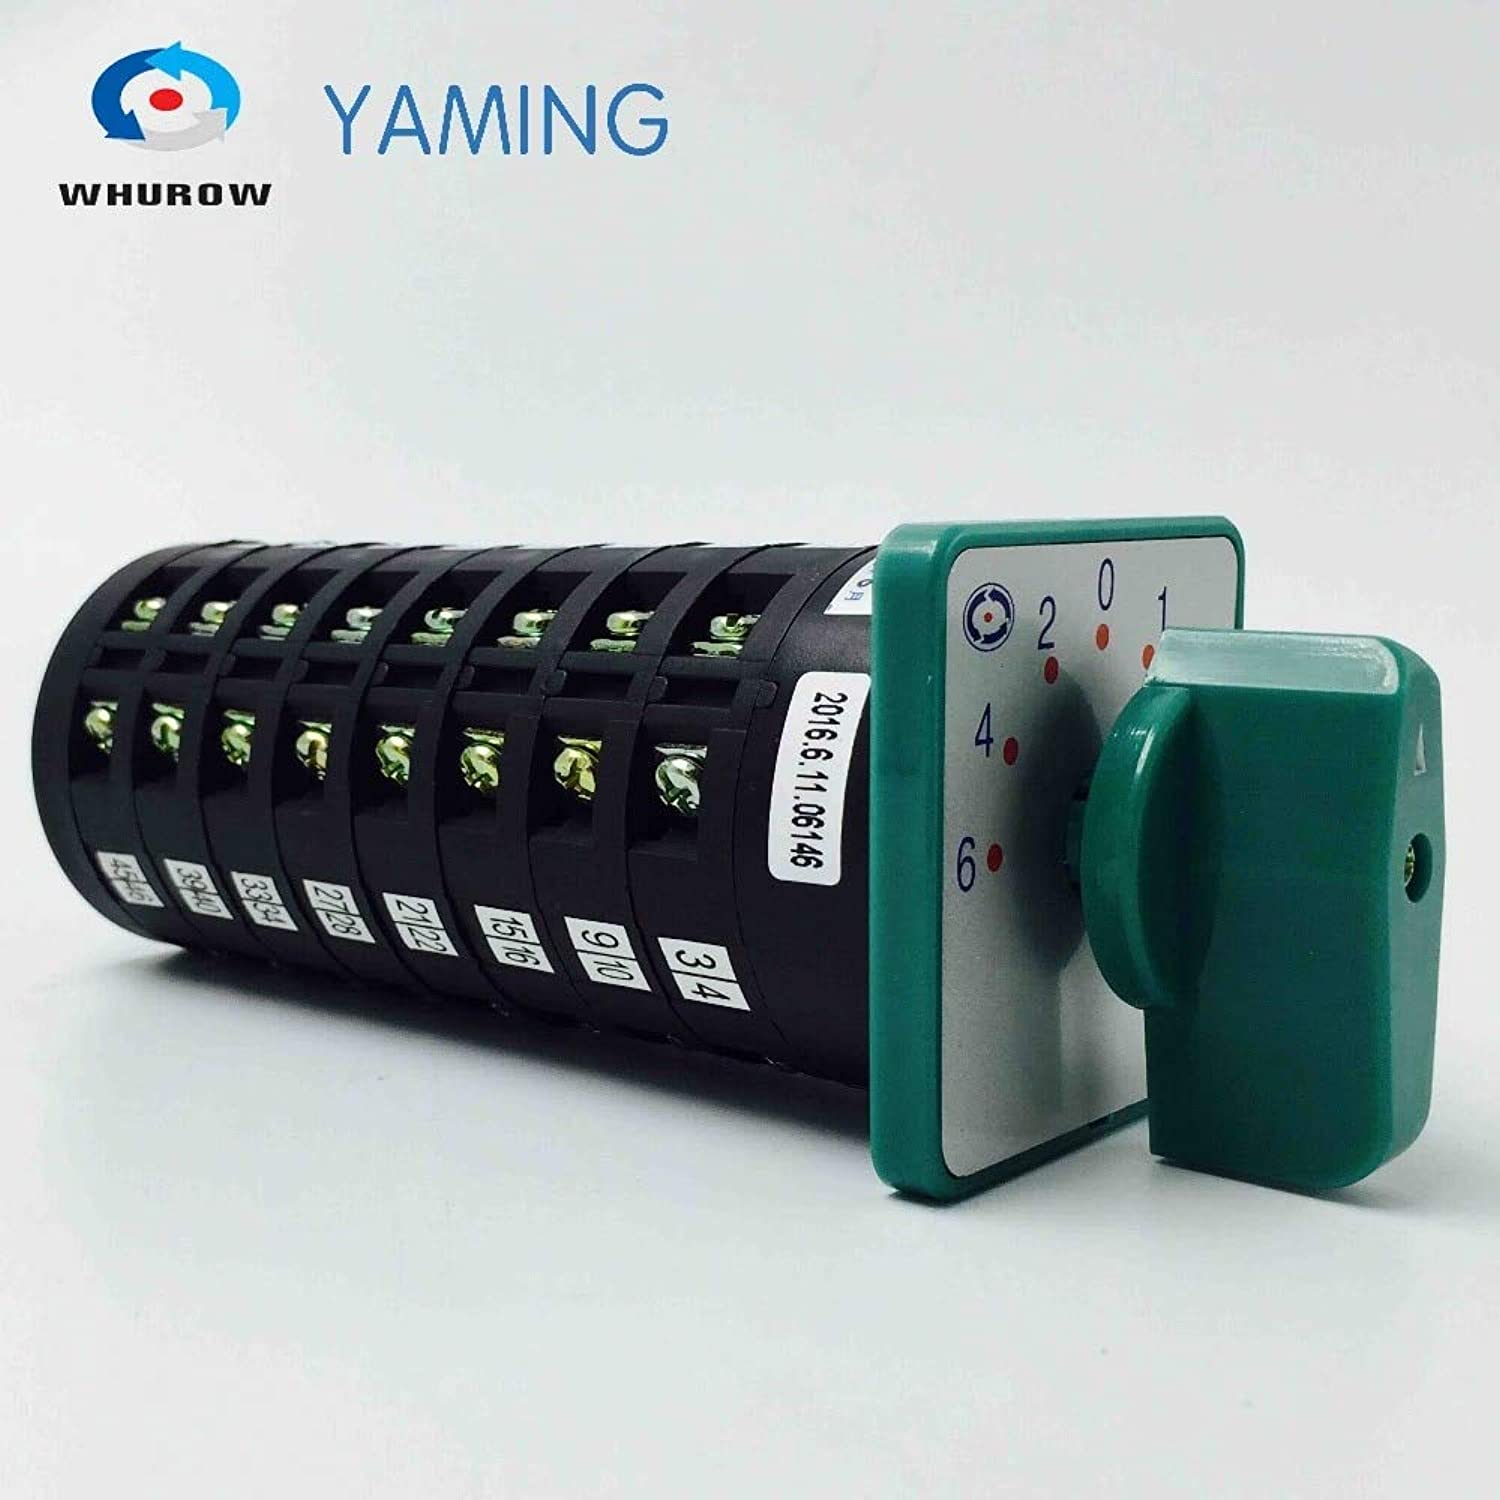 Yaming Electric 5A 380V redary cam Switch 6420135 Position 8 Poles Main Universal Changeover Switch LW68F432